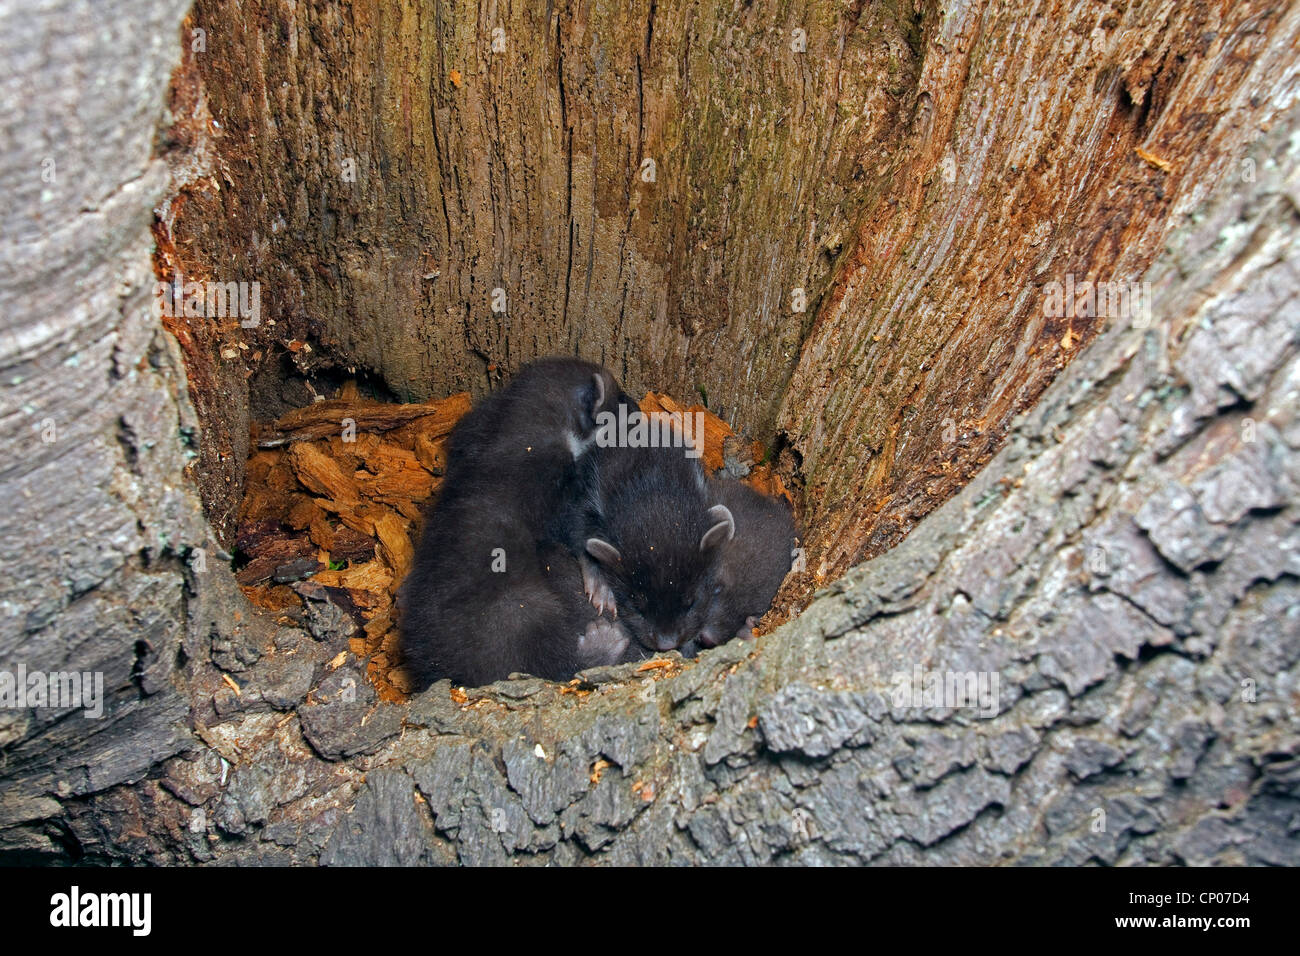 European pine marten (Martes martes), juveniles lying in tree hole, Germany - Stock Image